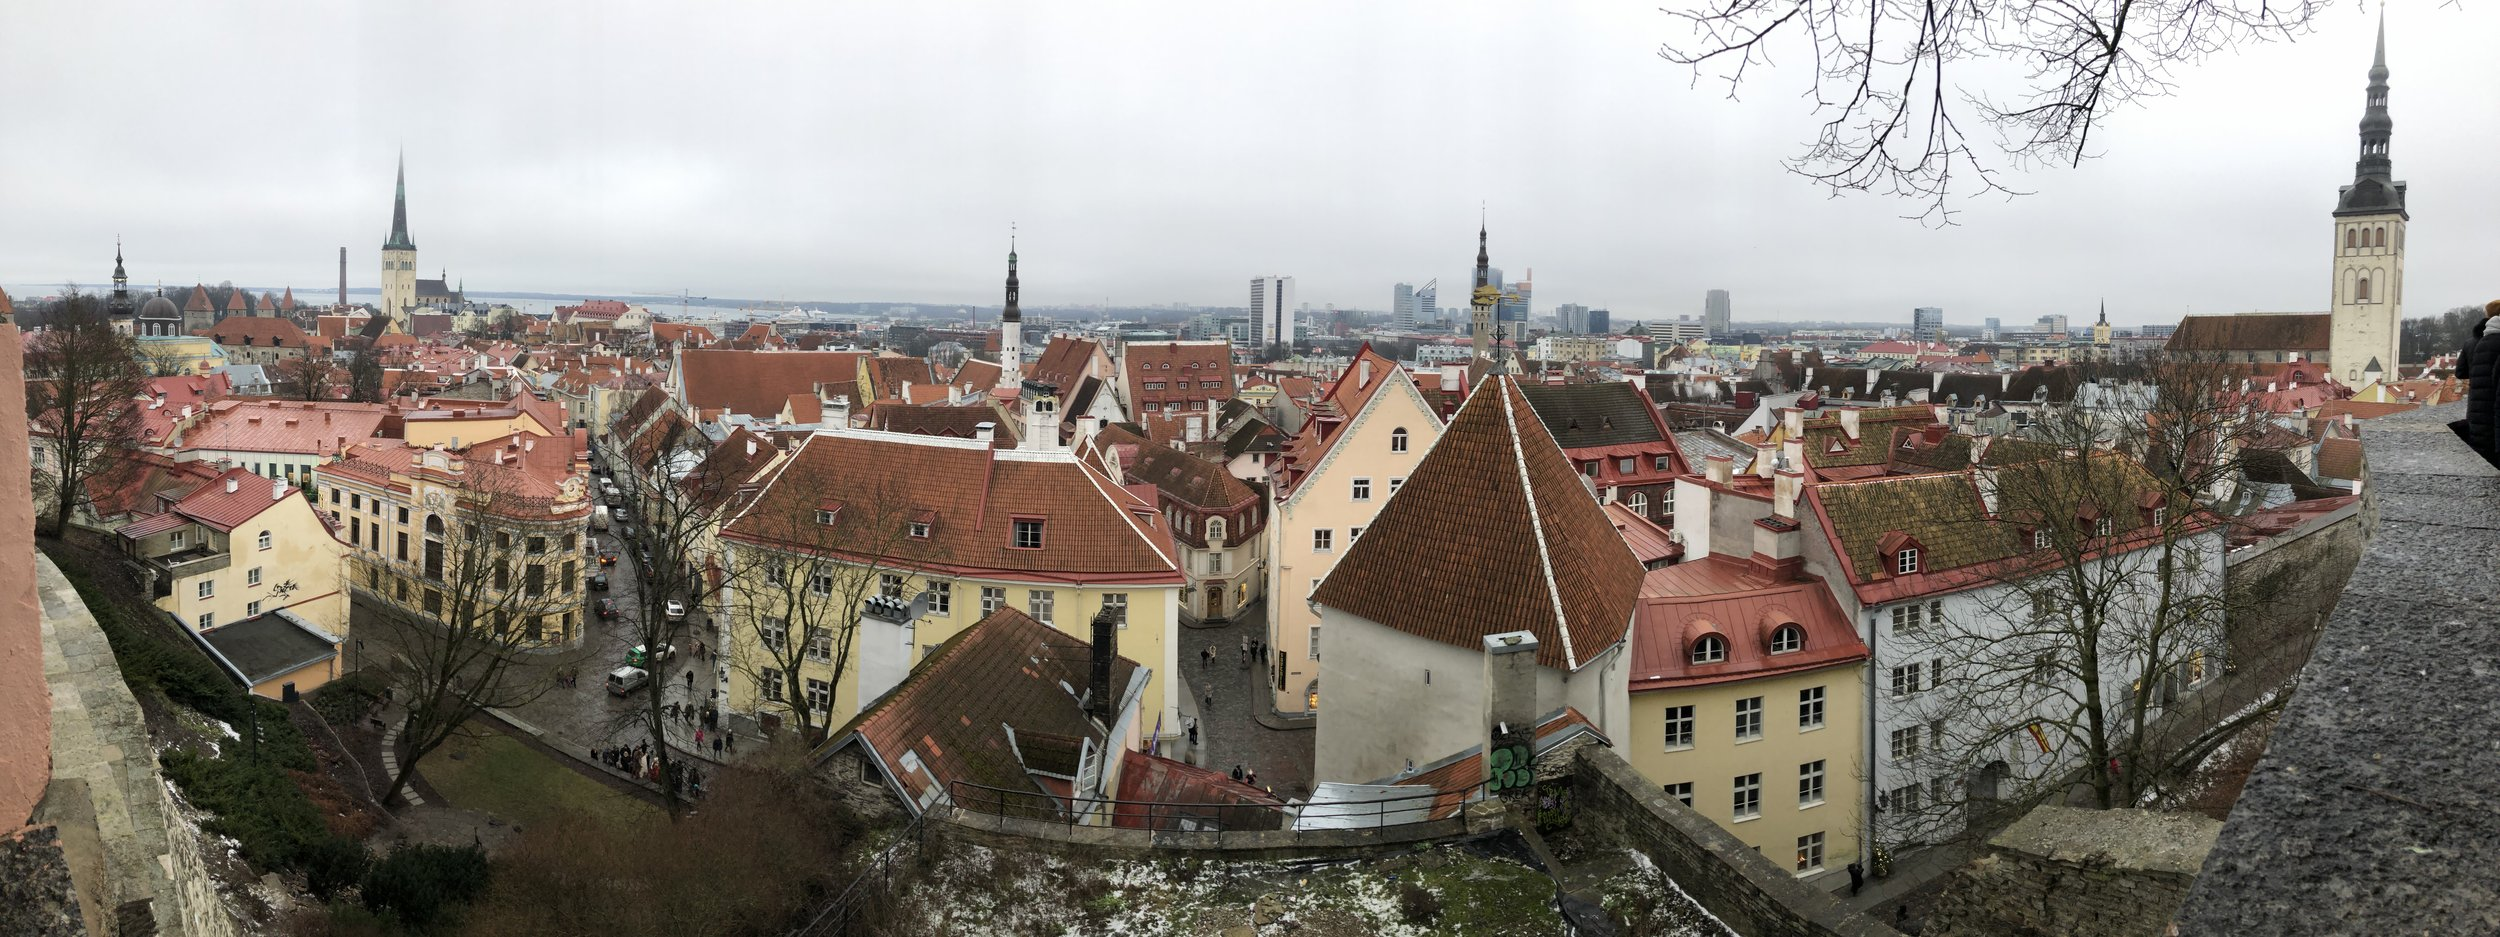 View of Tallinn from the Kohtuotsa viewing platform